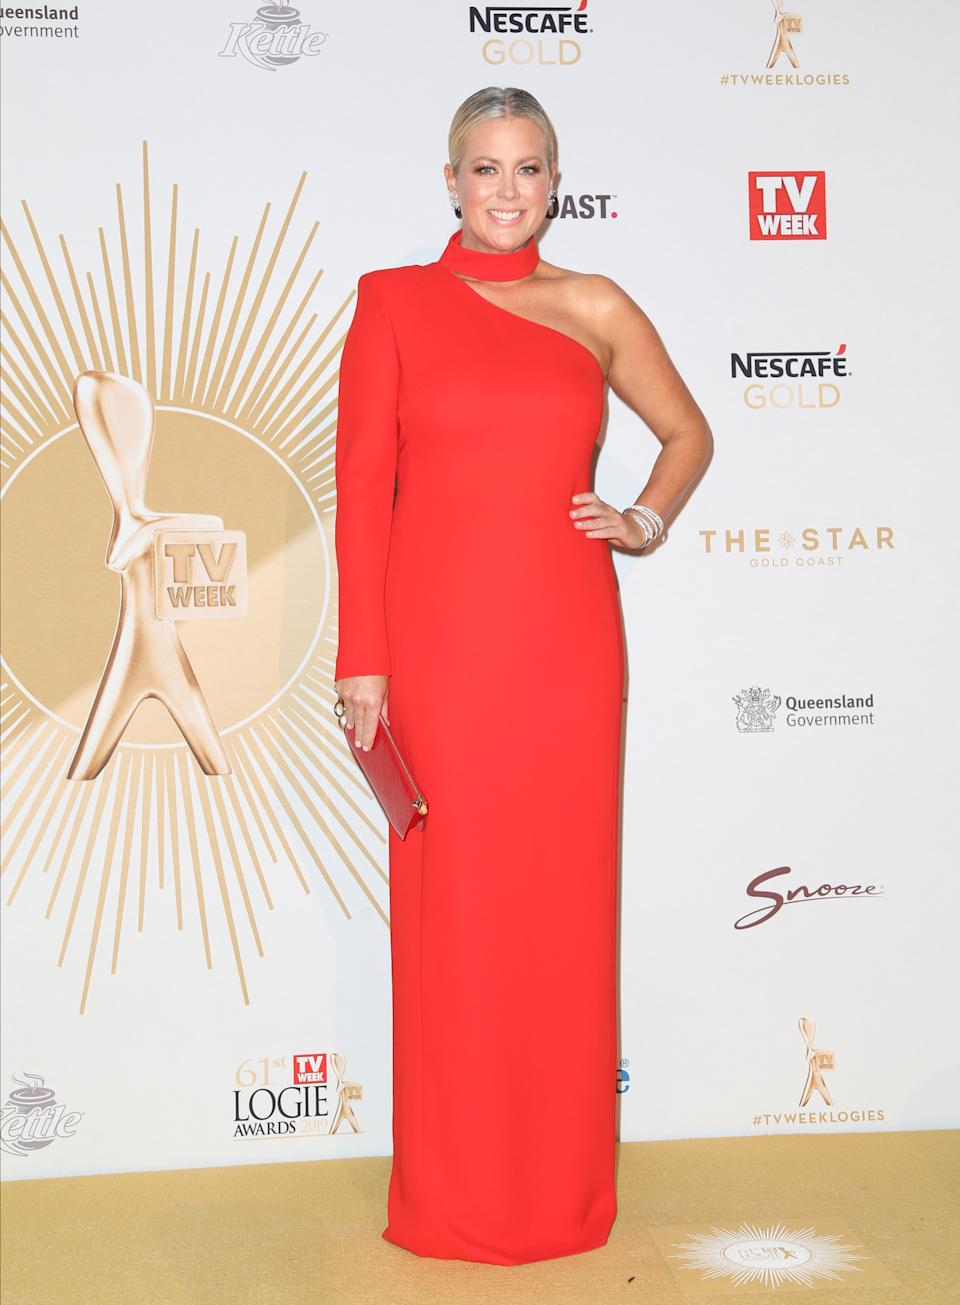 Samantha Armytage wears a red one-shoulder column gown at the 61st Annual TV WEEK Logie Awards at The Star Gold Coast on June 30, 2019 on the Gold Coast, Australia.